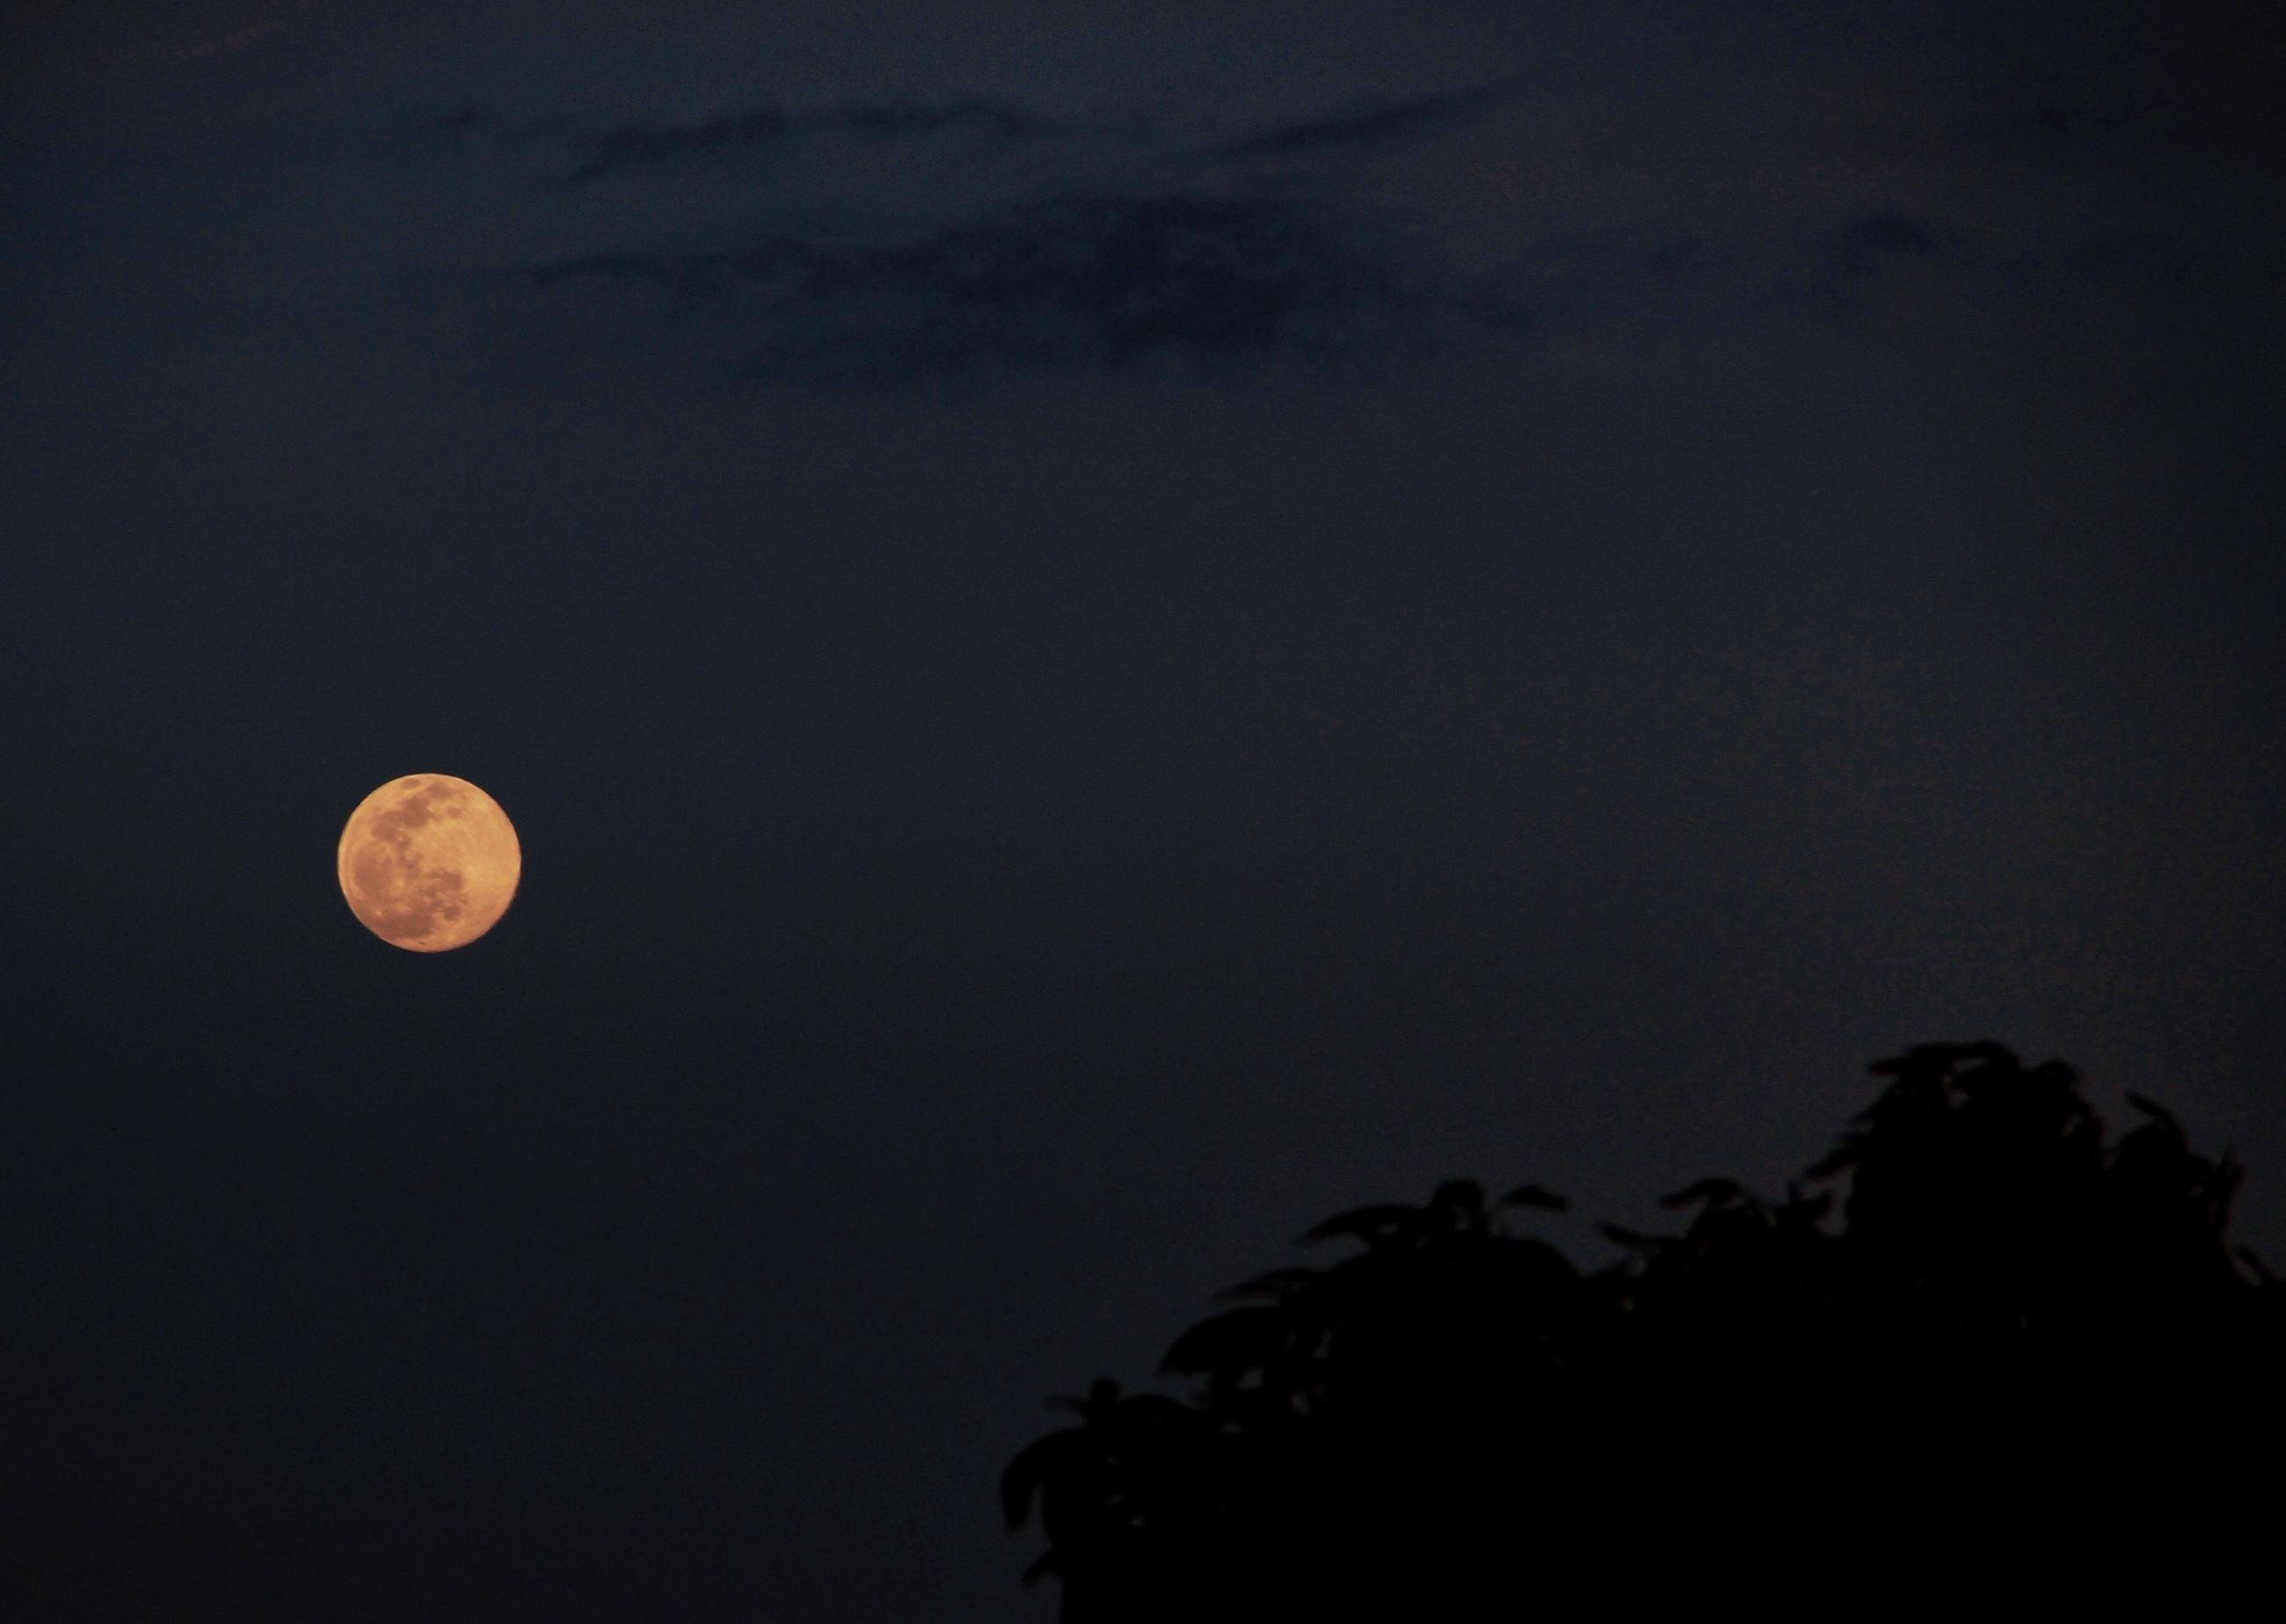 night, moon, low angle view, copy space, sky, full moon, astronomy, silhouette, beauty in nature, tranquility, dark, scenics, clear sky, tranquil scene, nature, planetary moon, circle, dusk, outdoors, no people